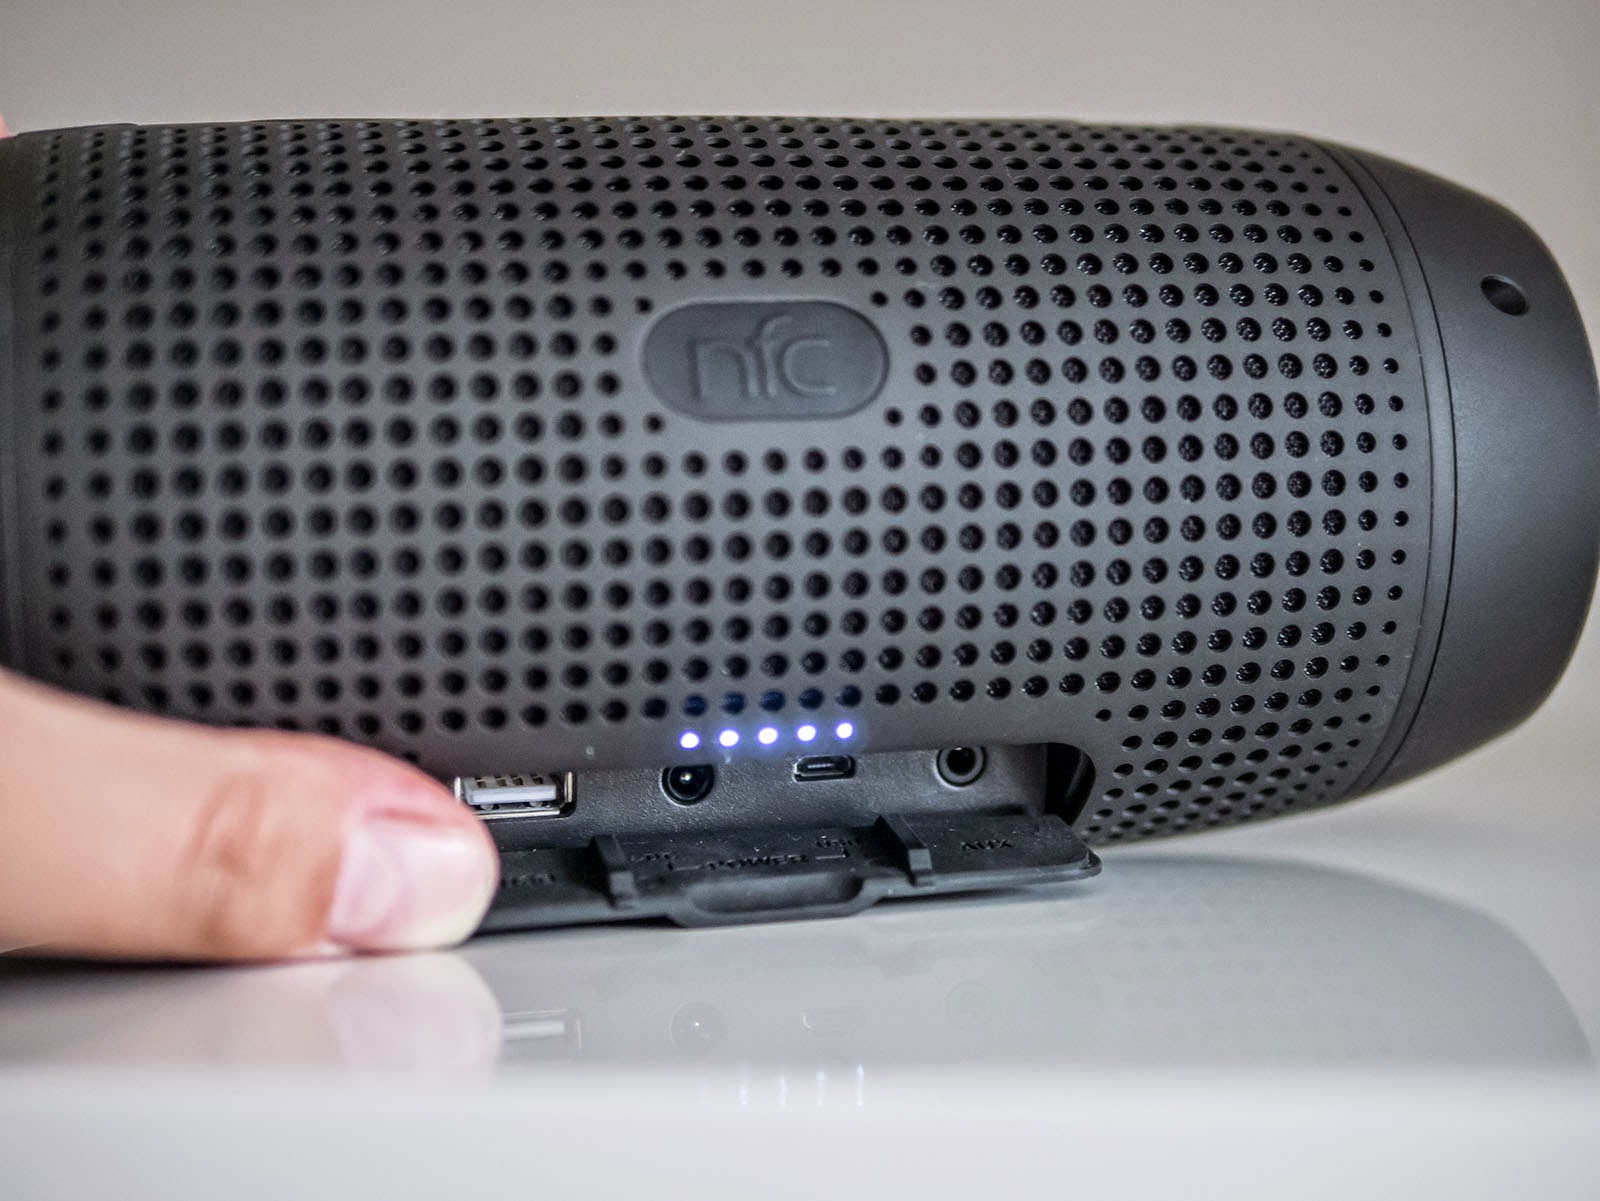 Oluv's Gadgets: Review: Infinity One - Premium wireless